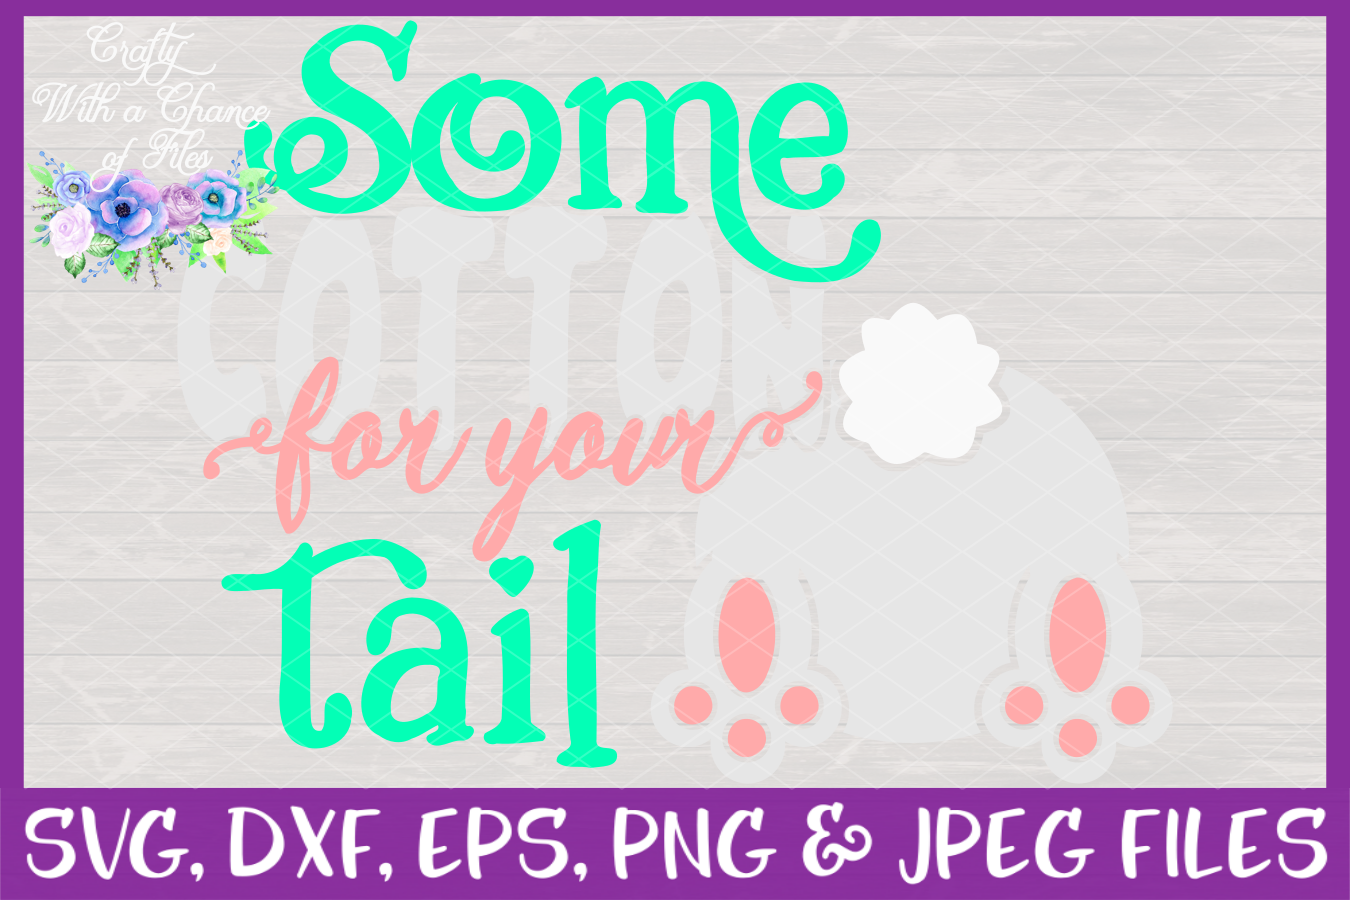 Some Cotton For Your Tail SVG * Easter SVG * Toilet Paper SVG * Easter Toilet Paper SVG * SVG Vector Cutting File For Use With Cricut and Silhouette example image 3